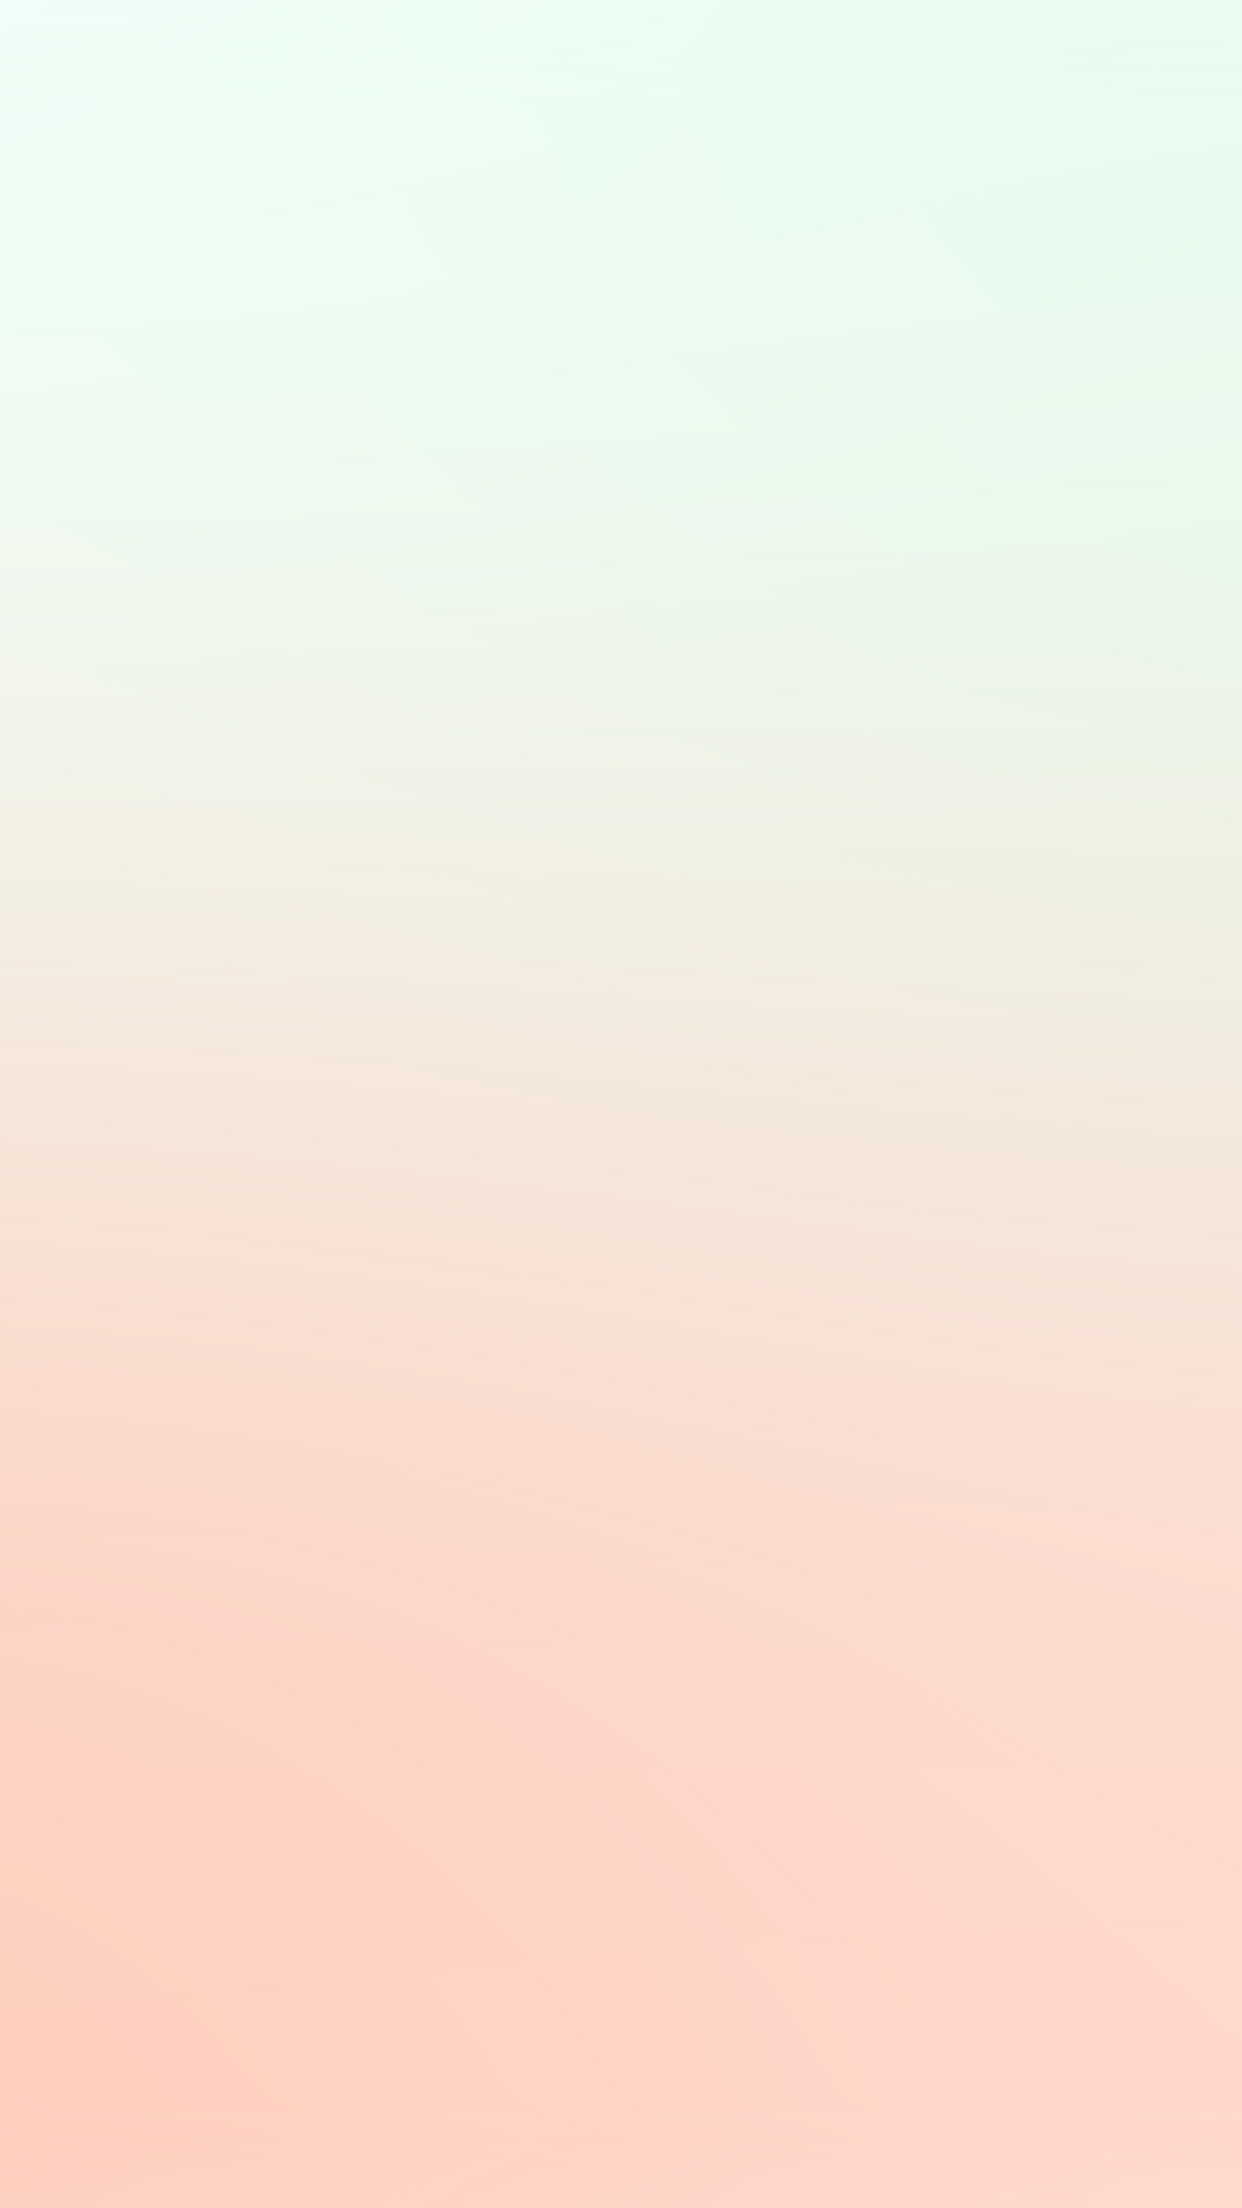 Pastel Pink Wallpaper Cute For Iphone X Iphonexpapers